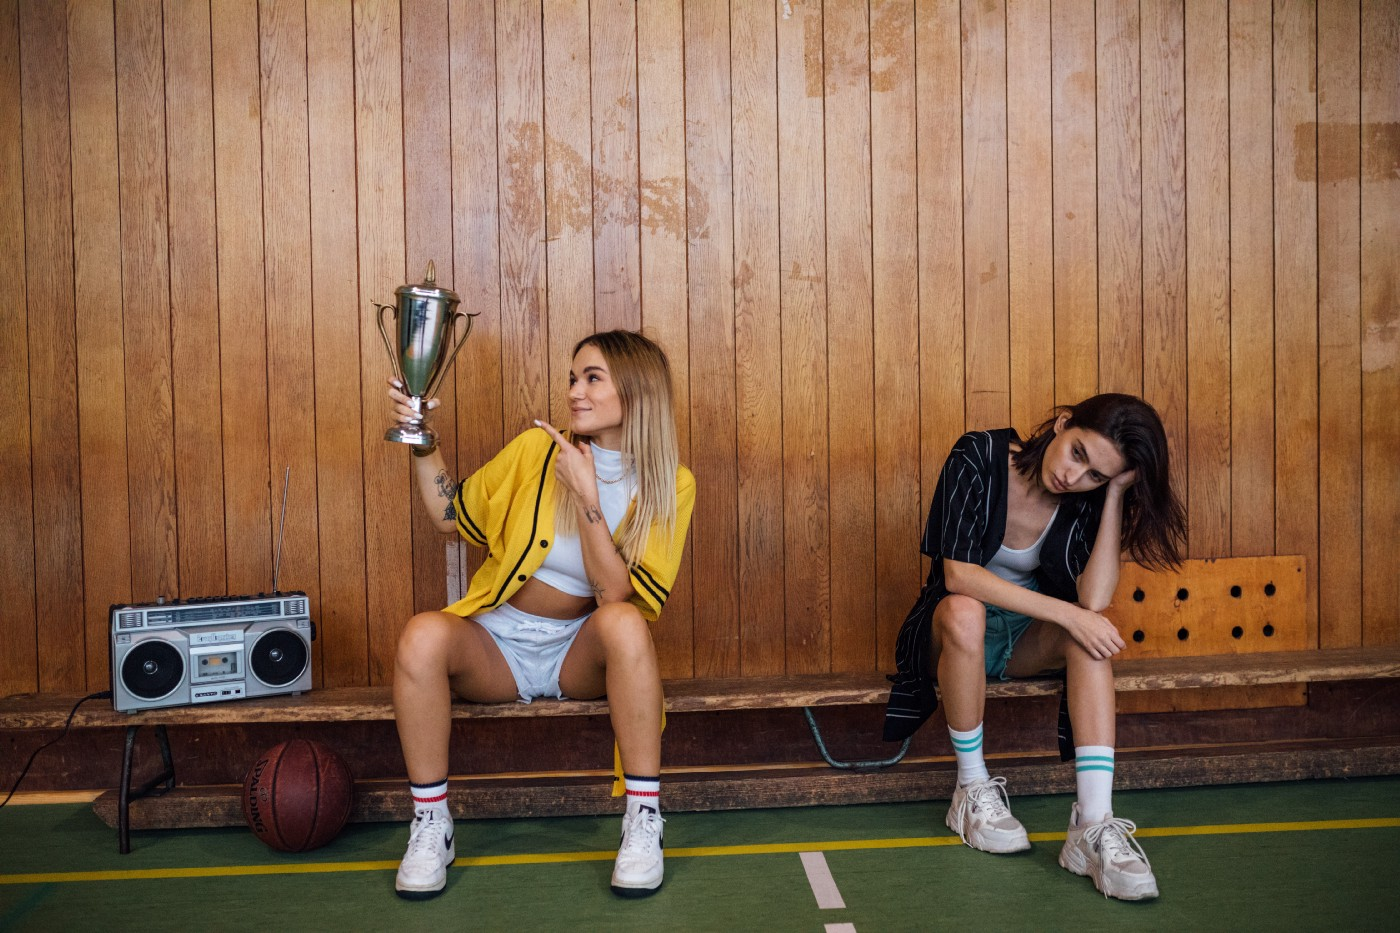 Two girls sitting on a bench after a game. One holding a trophy and one sad that she lost.